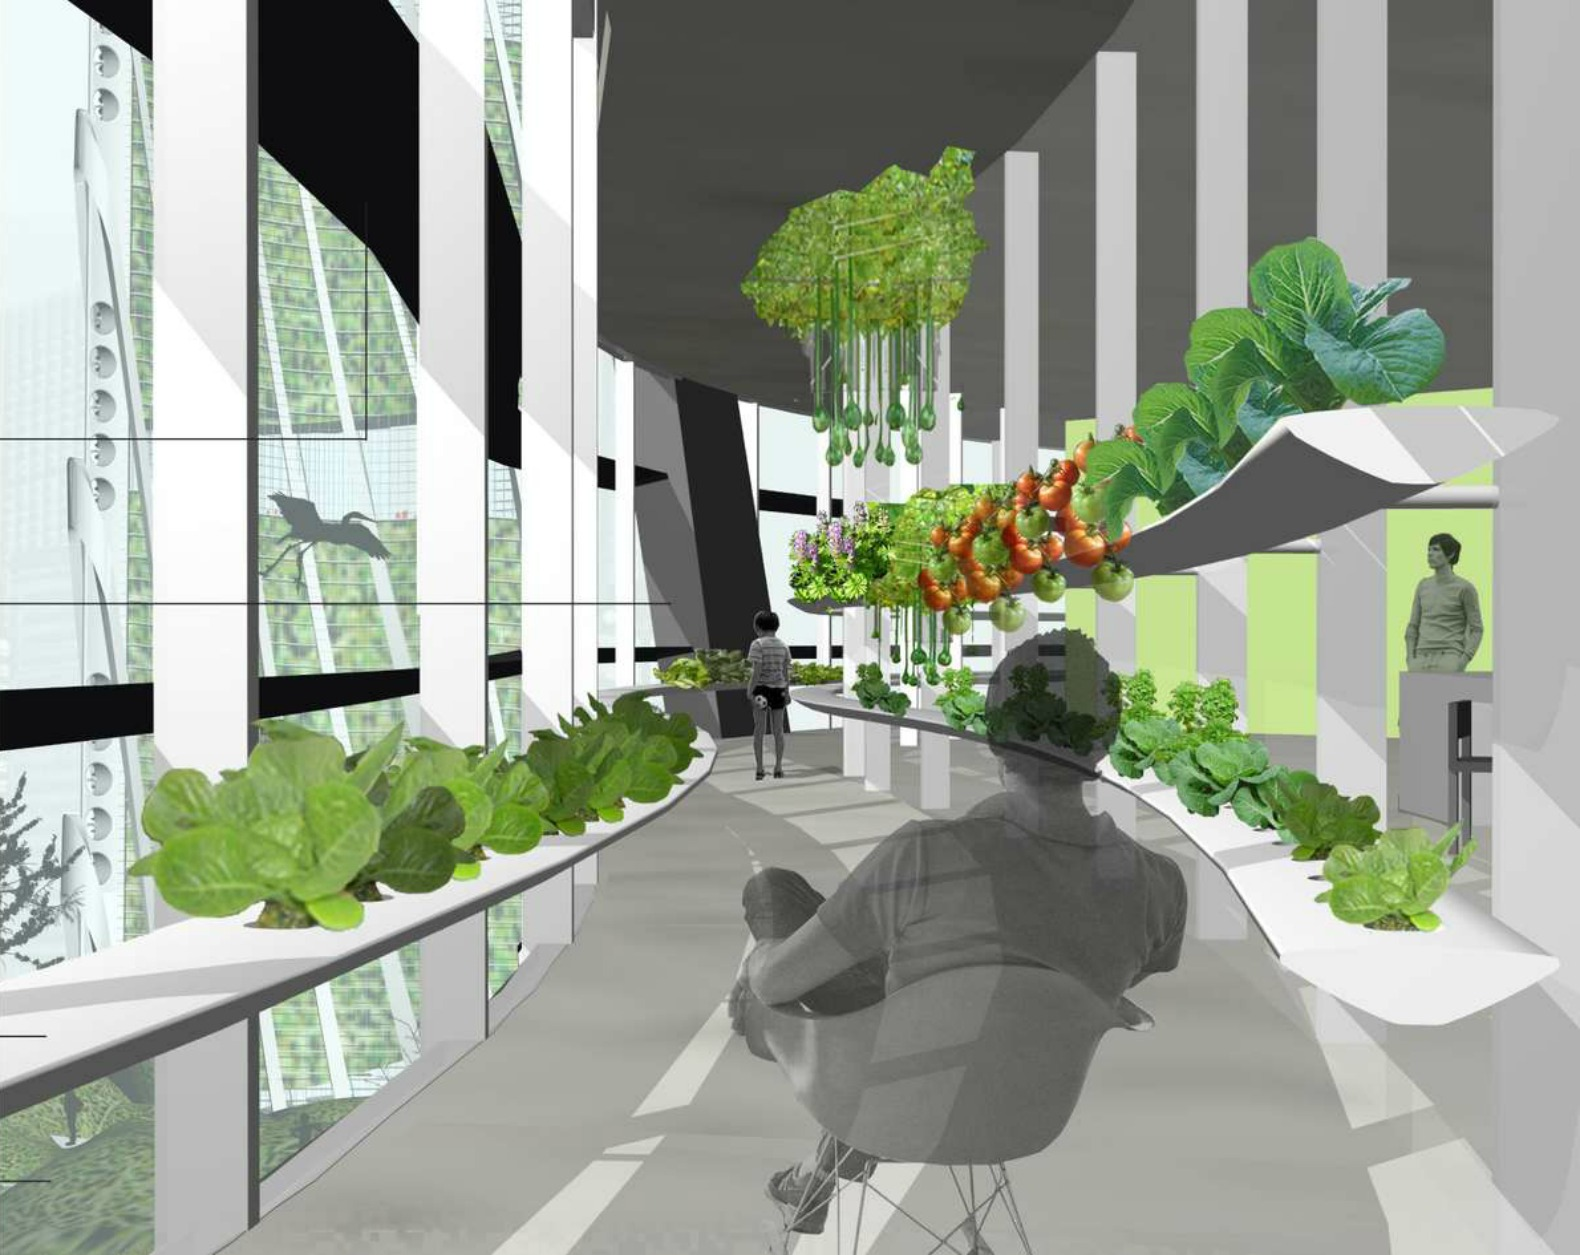 URBAN PLANT tower would allow tenants to grow food year-round in a flourishing winter garden